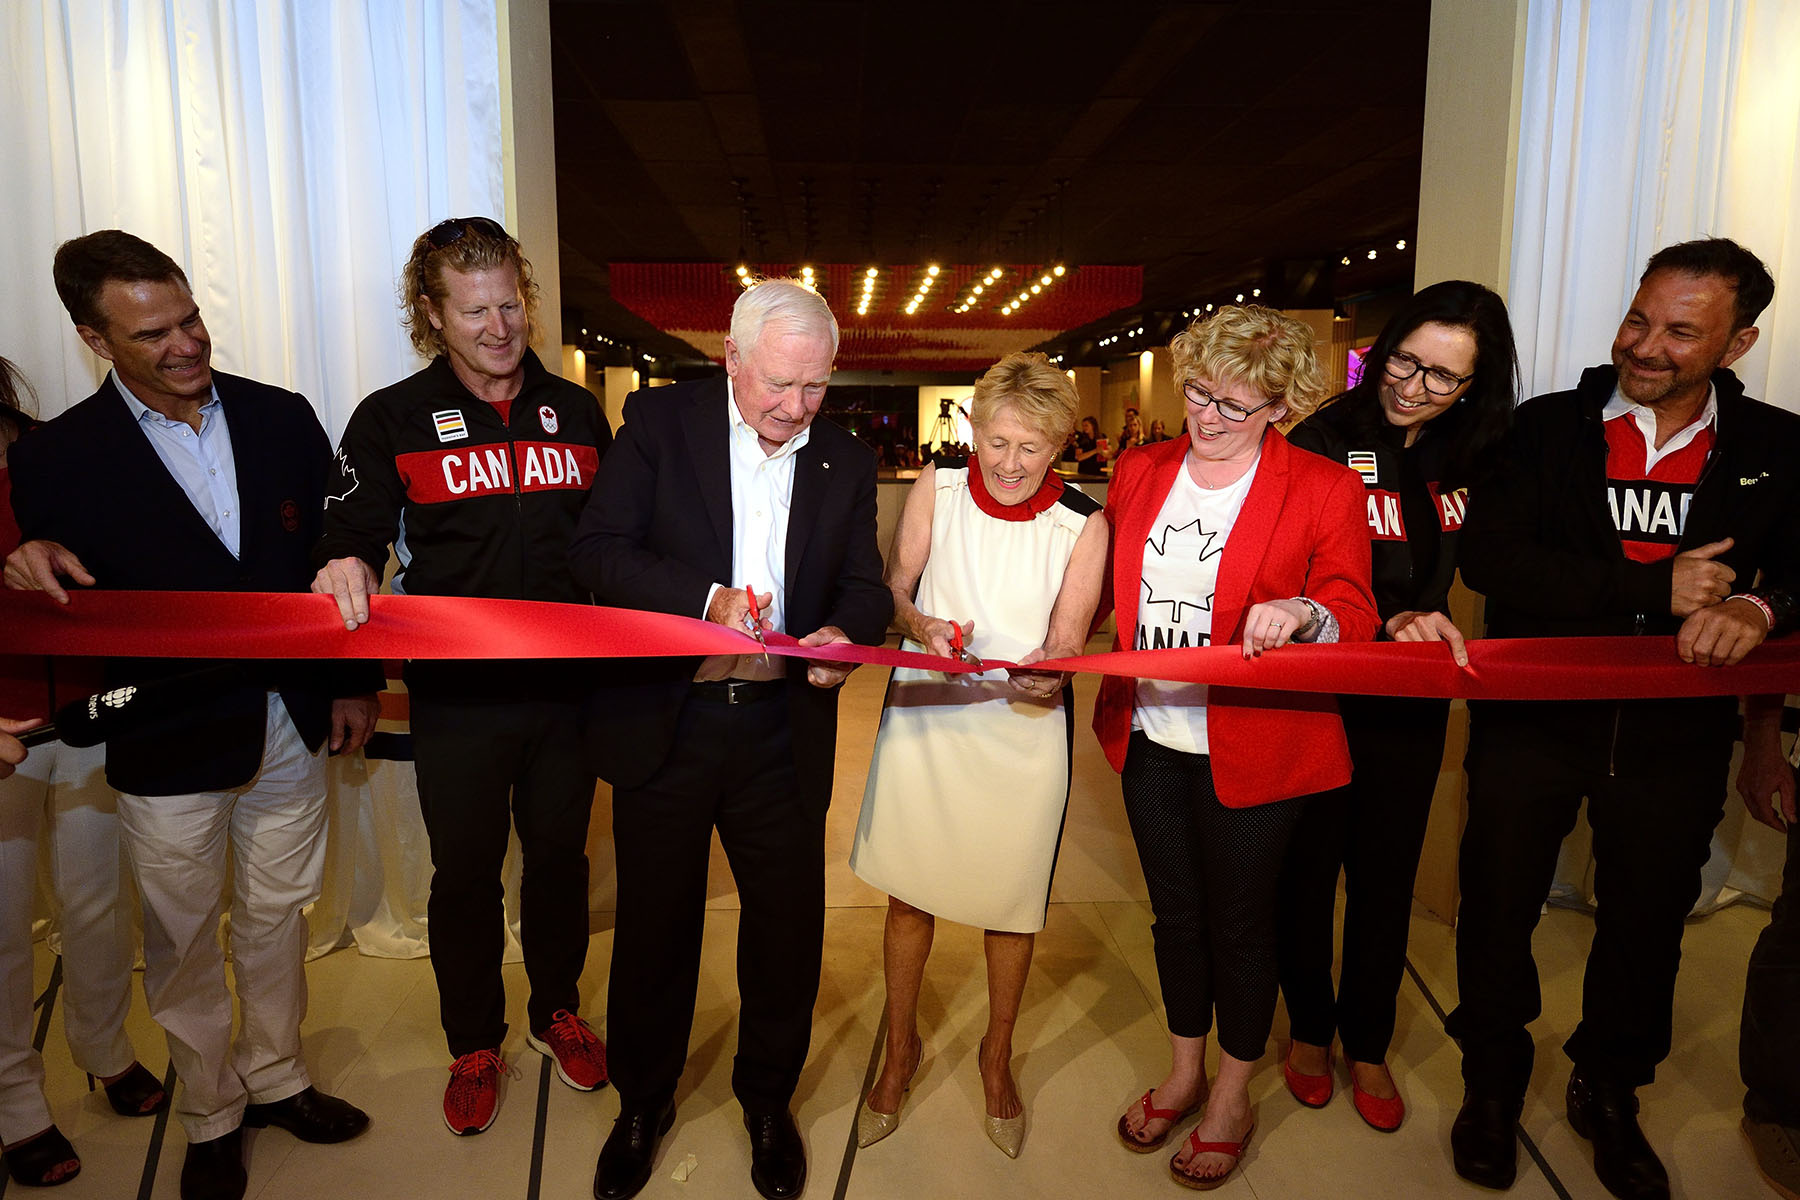 In the evening, Their Excellencies attended the ceremony marking the official opening of Canada Olympic House.